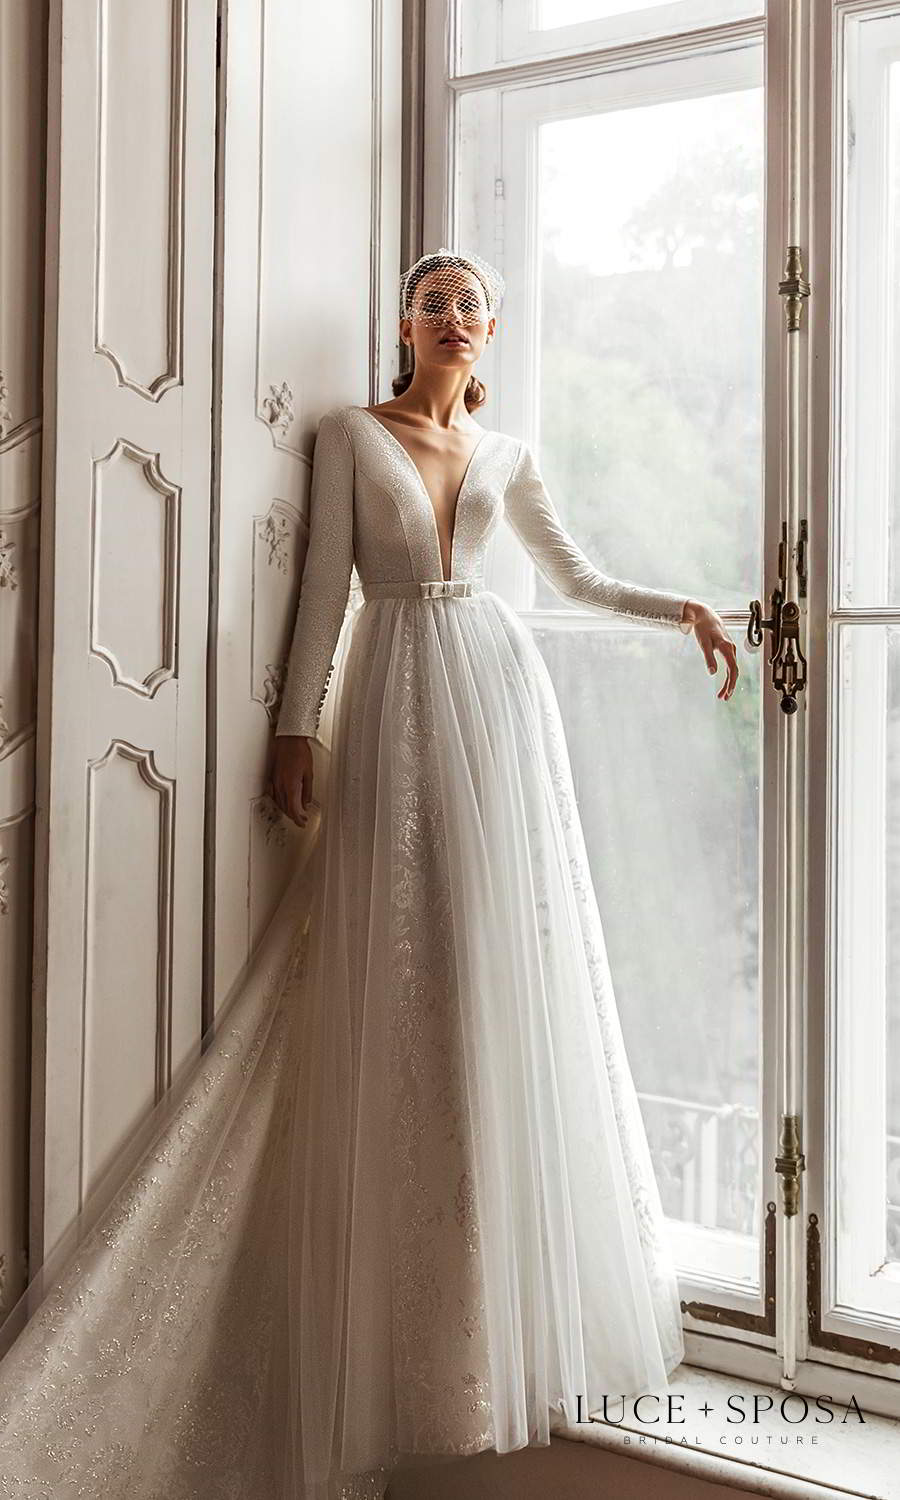 luce sposa 2021 shades of couture bridal long sleeves plunging v neckline embellished a line ball gown wedding dress chapel train (nicole) mv